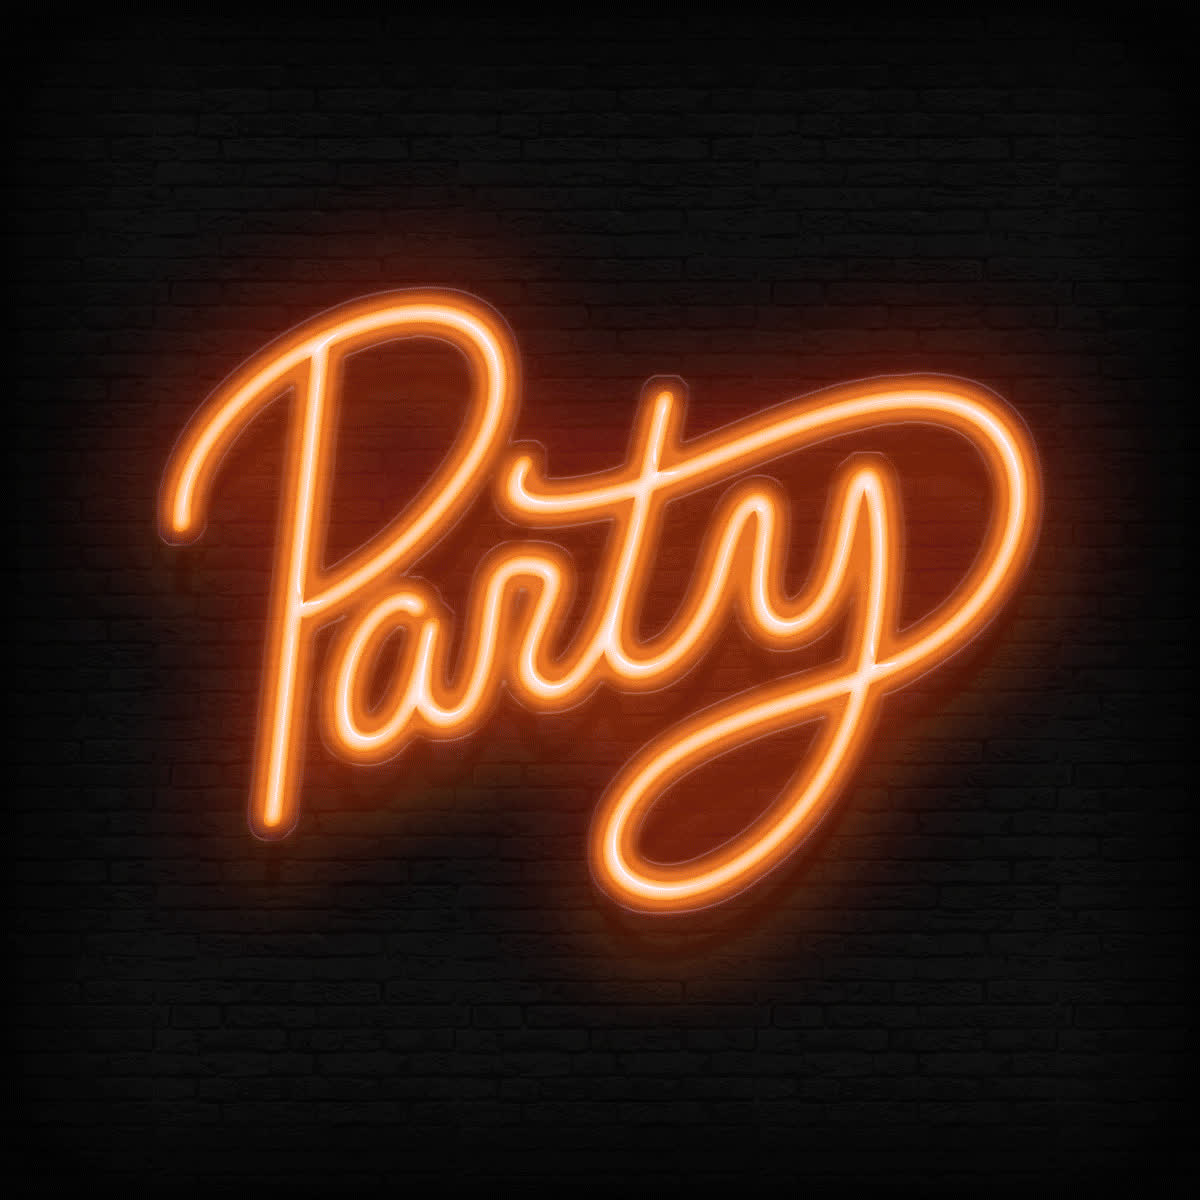 Malaea, animation, lights, neon sign, party, Party Lights Animation GIFs